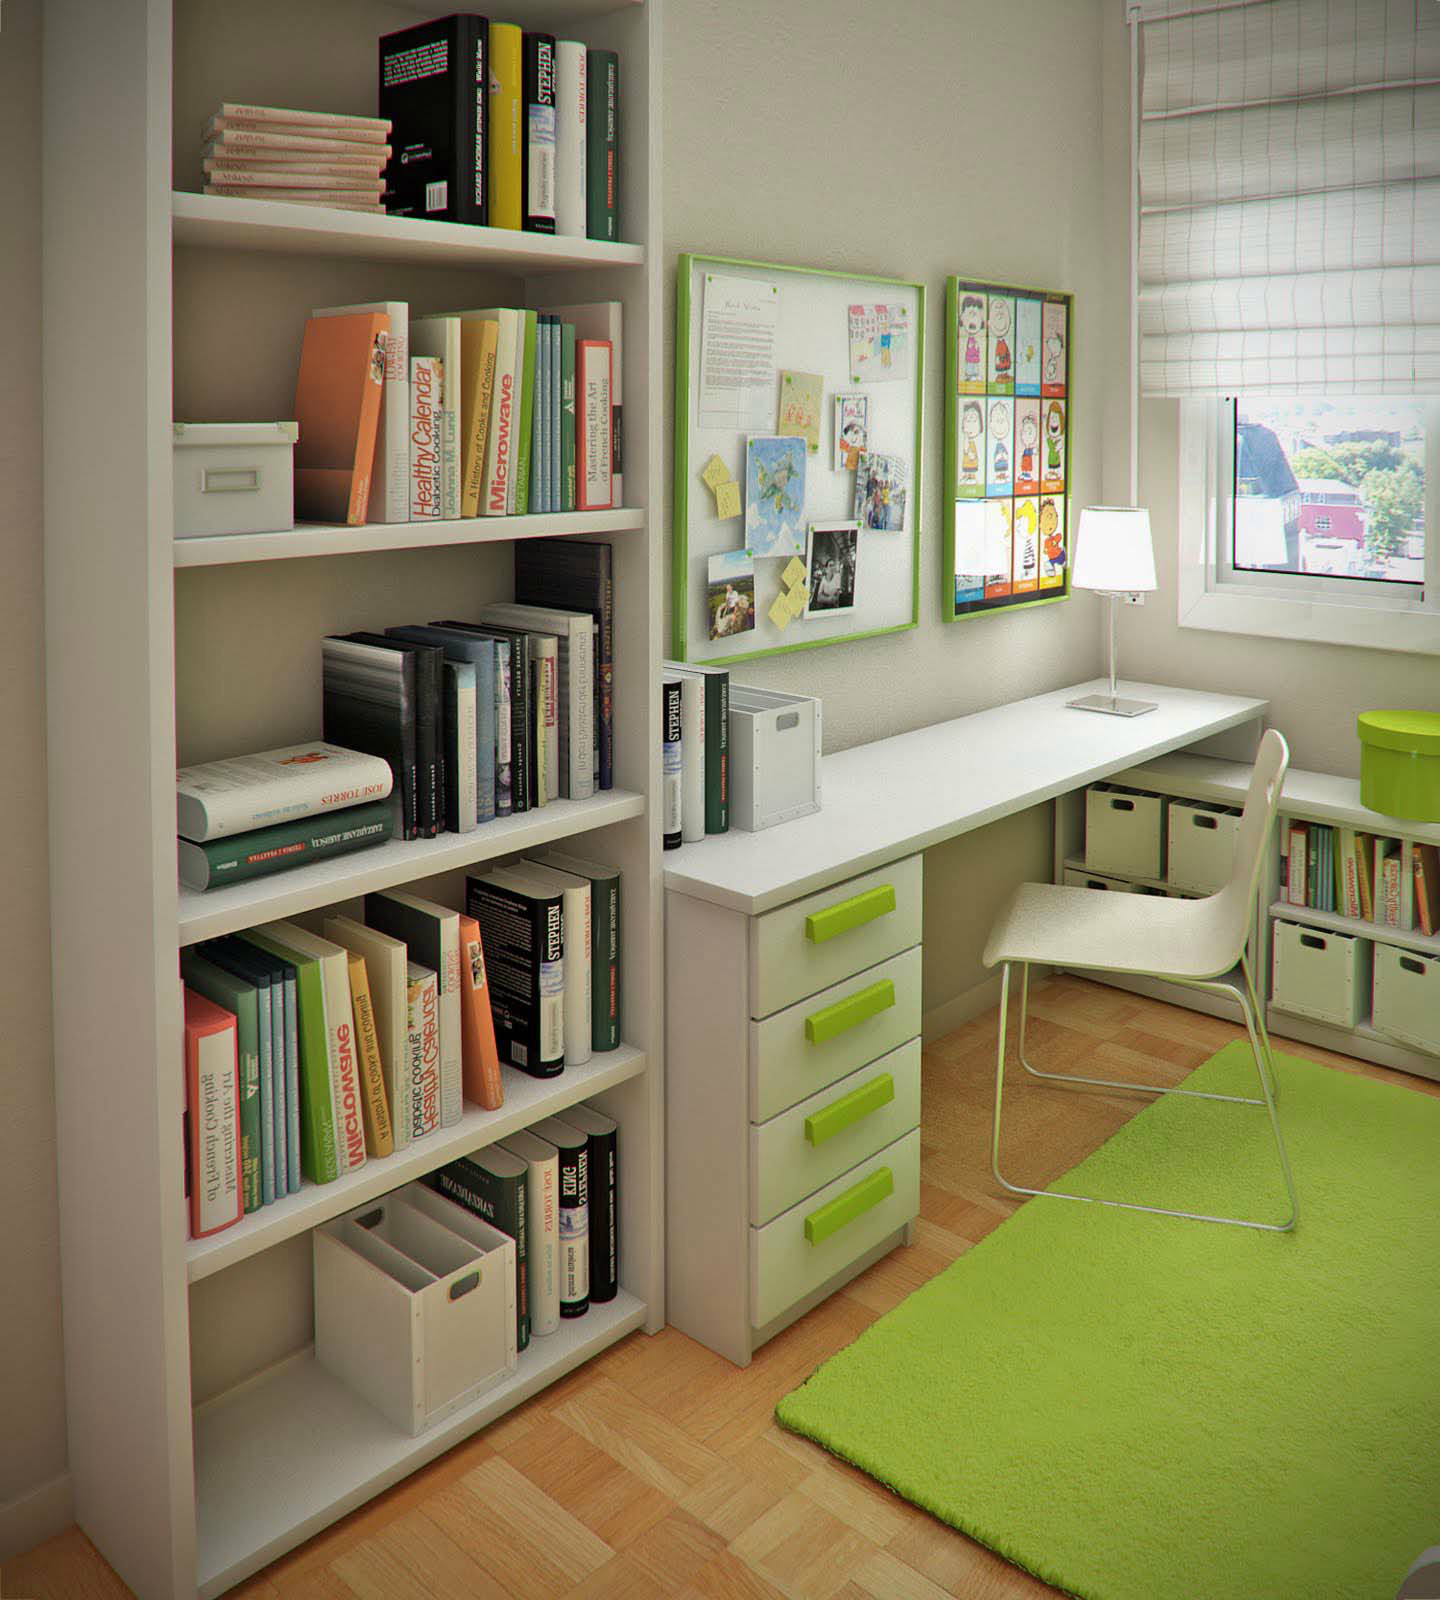 Study Room Furniture Ideas: Feng Shui For Study Room